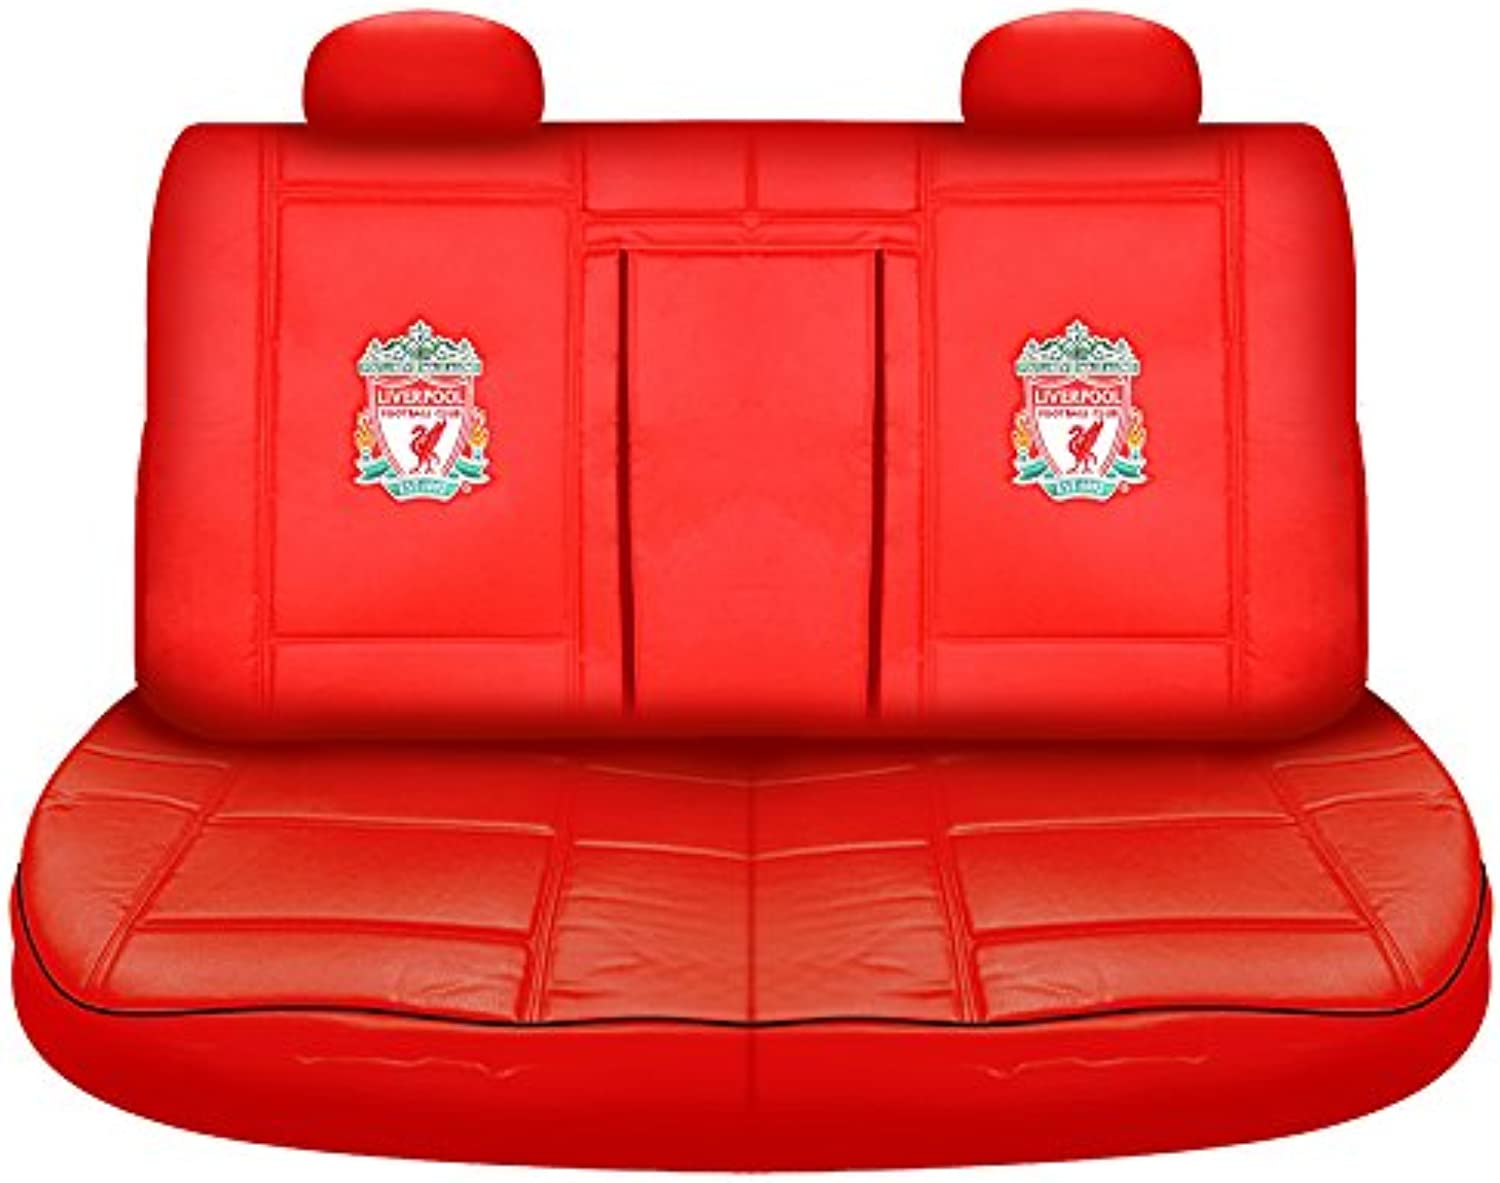 Liverpool FC Premium Edition Rear Seat Cover (red)